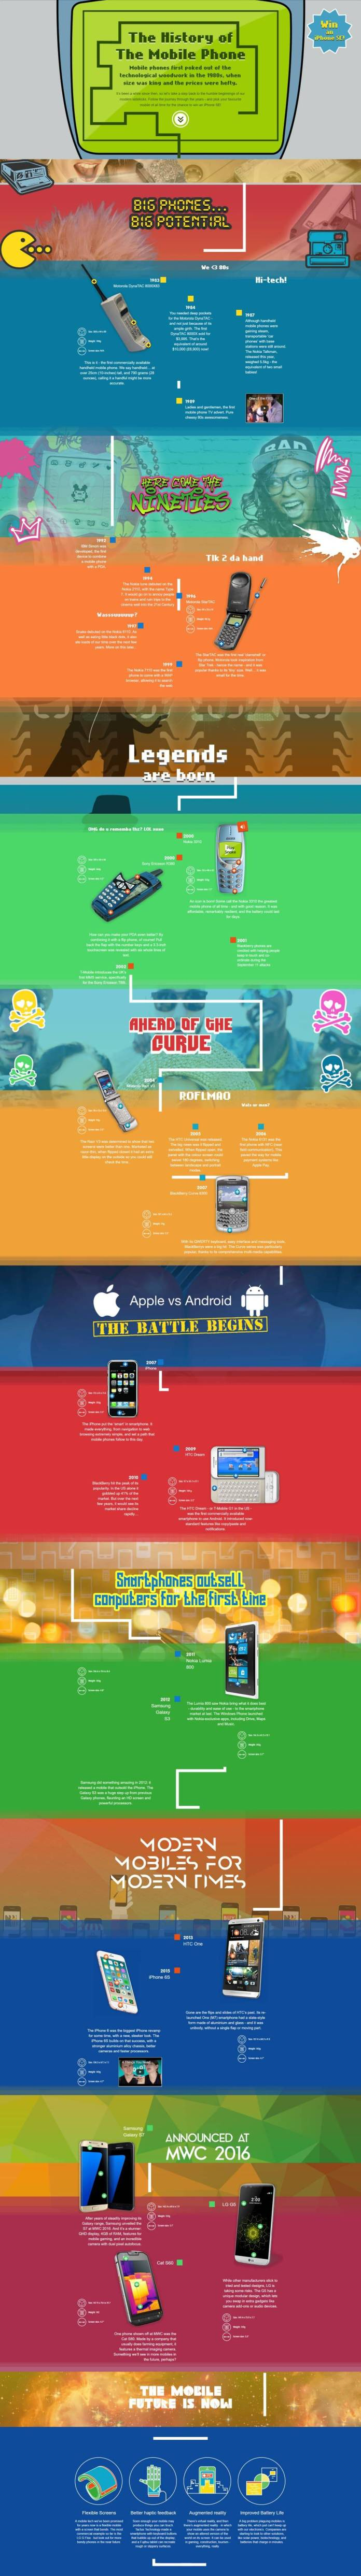 history of smartphones since 1980 infographic_mini